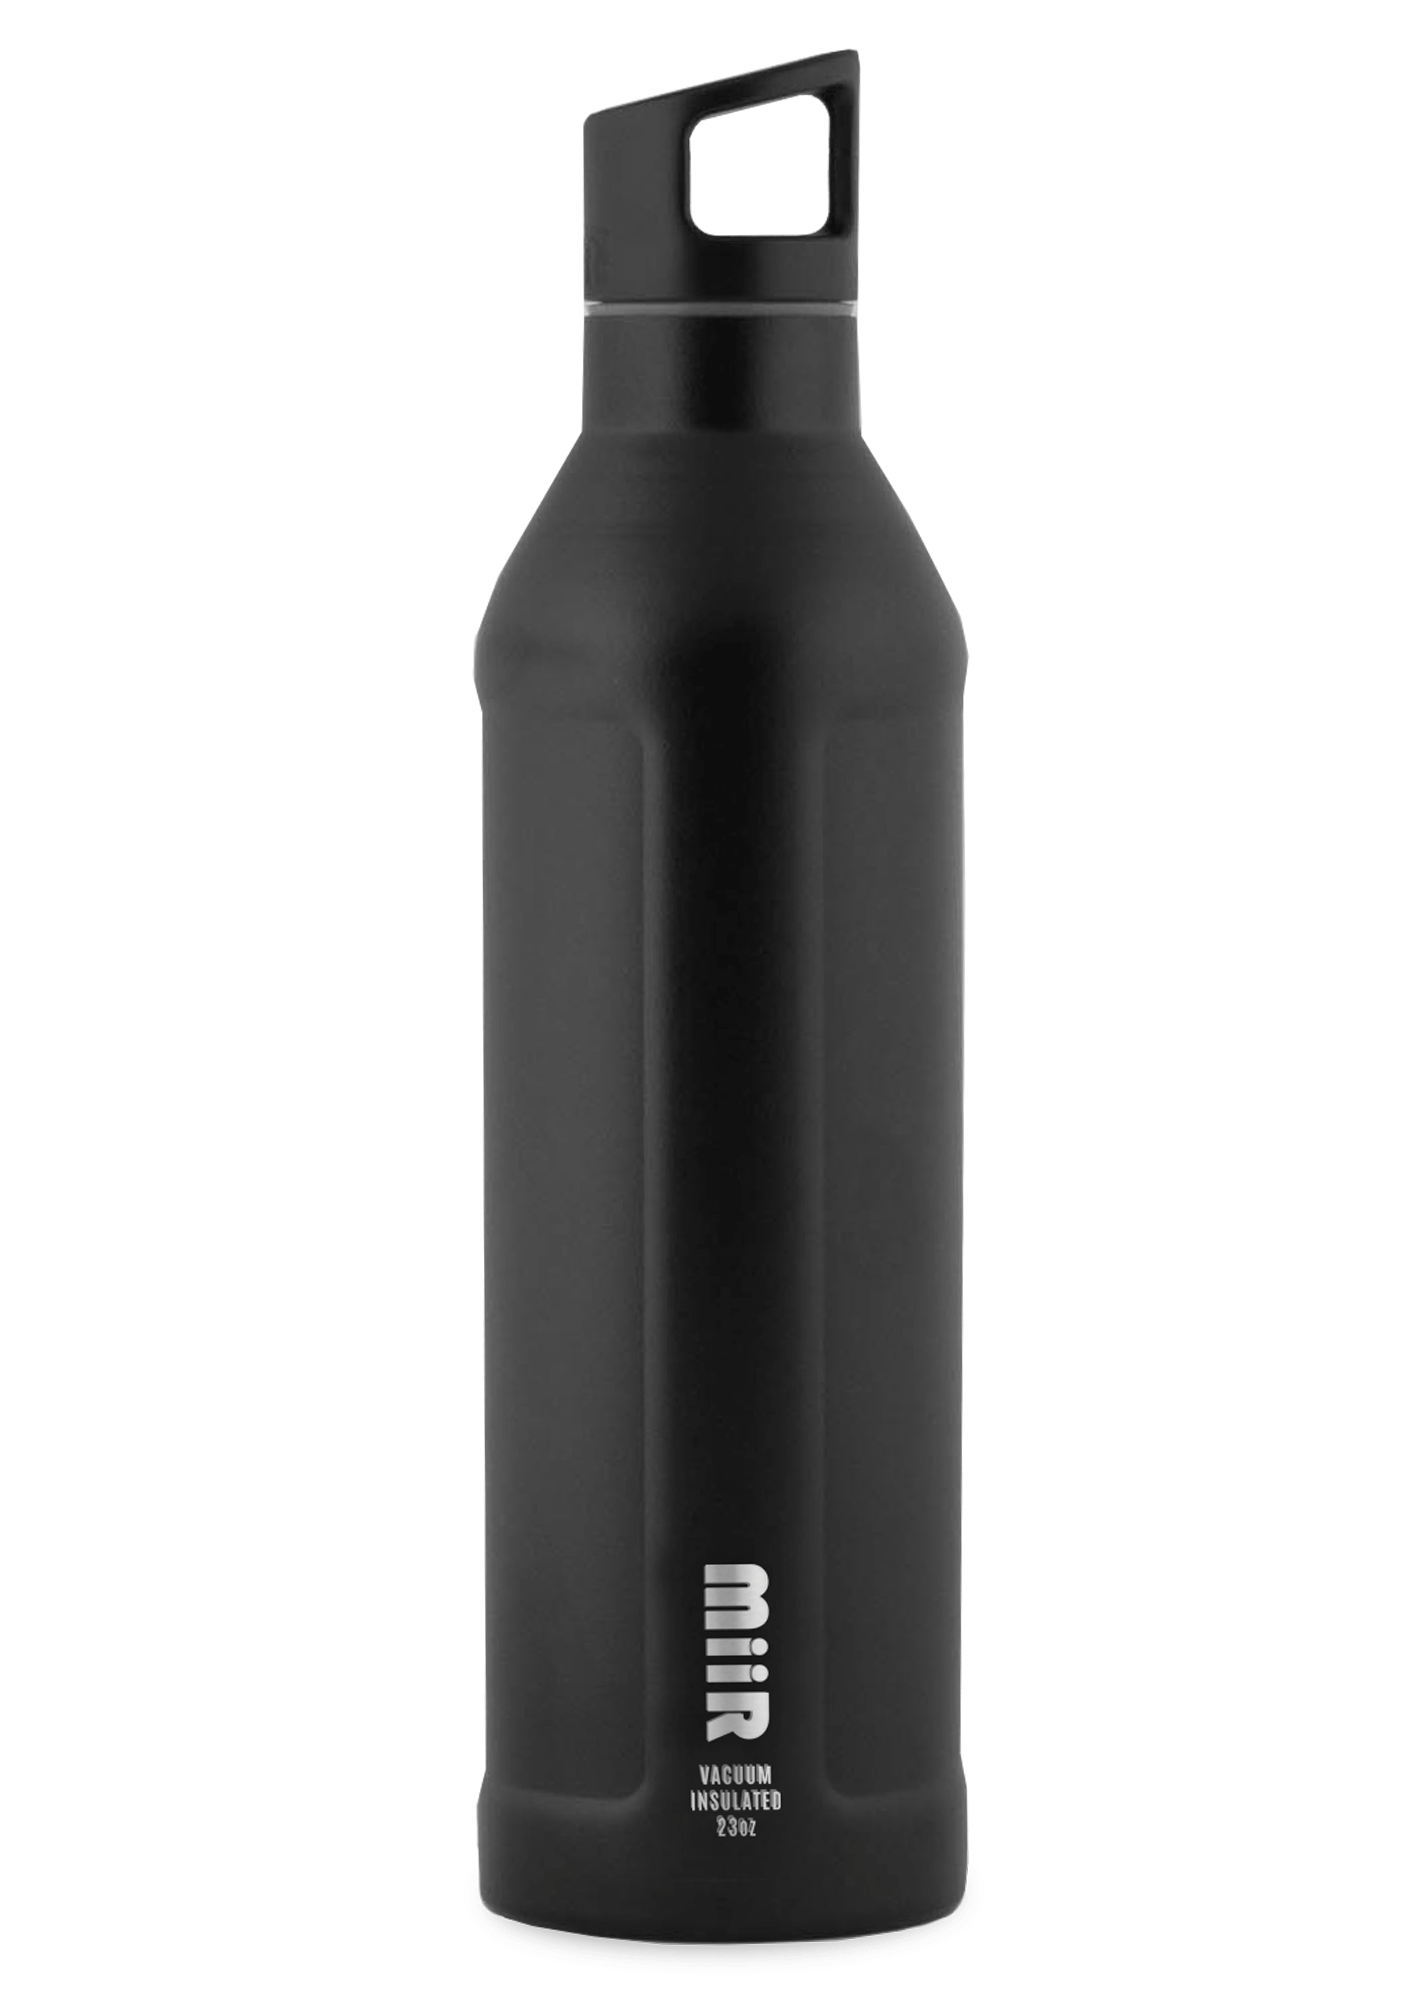 094d0de8f6d 23oz Vacuum Insulated Bottle | Sri Lanka | Bottle, Water bottle ...